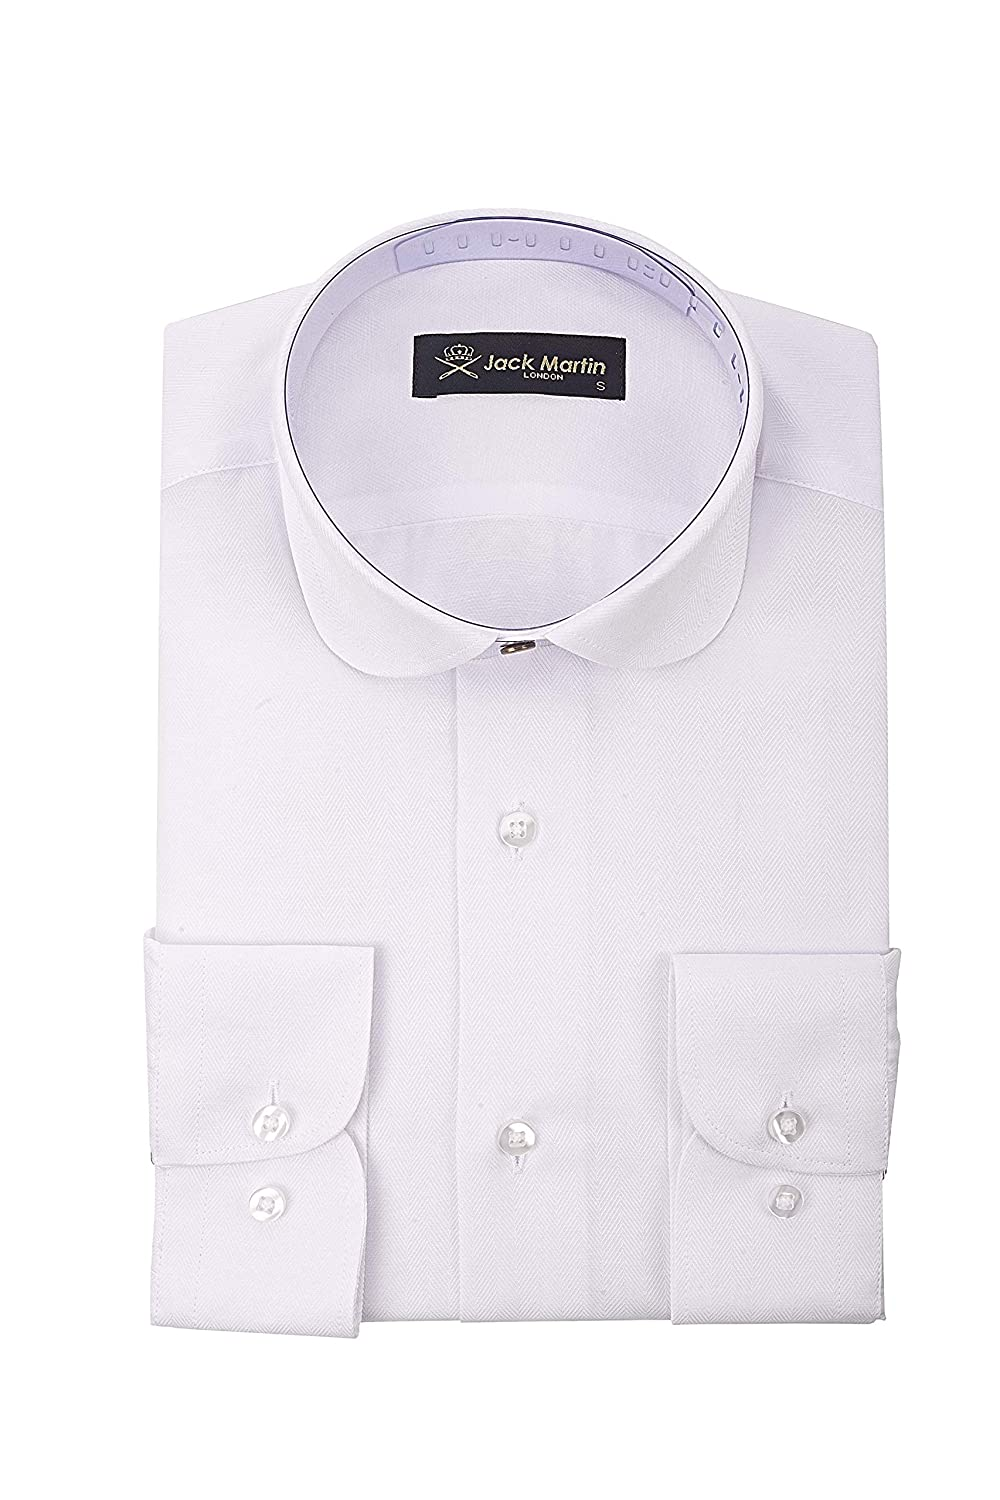 Vintage Shirts – Mens – Retro Shirts Jack Martin London Peaky Blinders - Club/Penny Collar - White Herringbone Slim Fit Shirt £29.00 AT vintagedancer.com